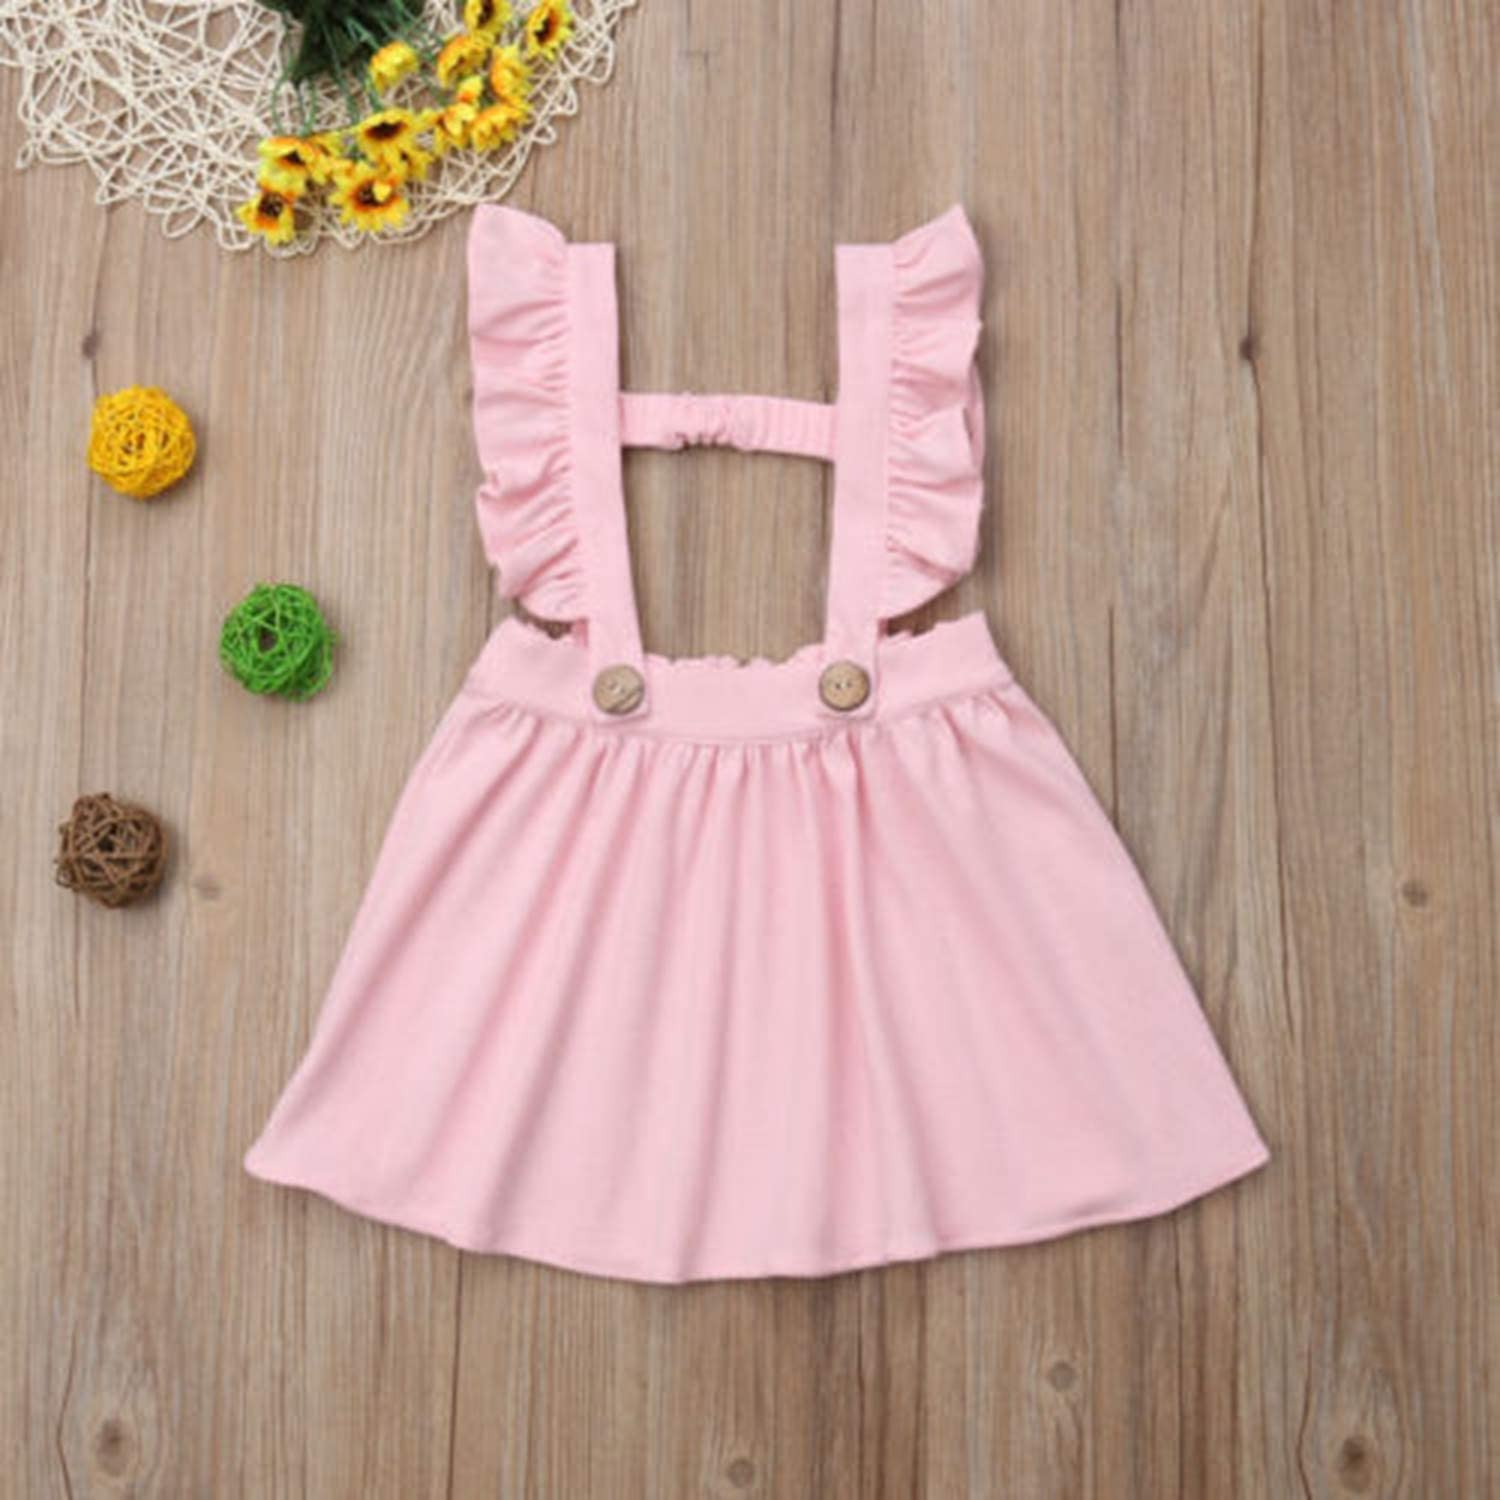 Beancan New Baby Outfit Kids Baby Girls Skirt Casual Cotton Overalls Jumper Suspender Solid Girl Tutu Short Mini Skirts Gray